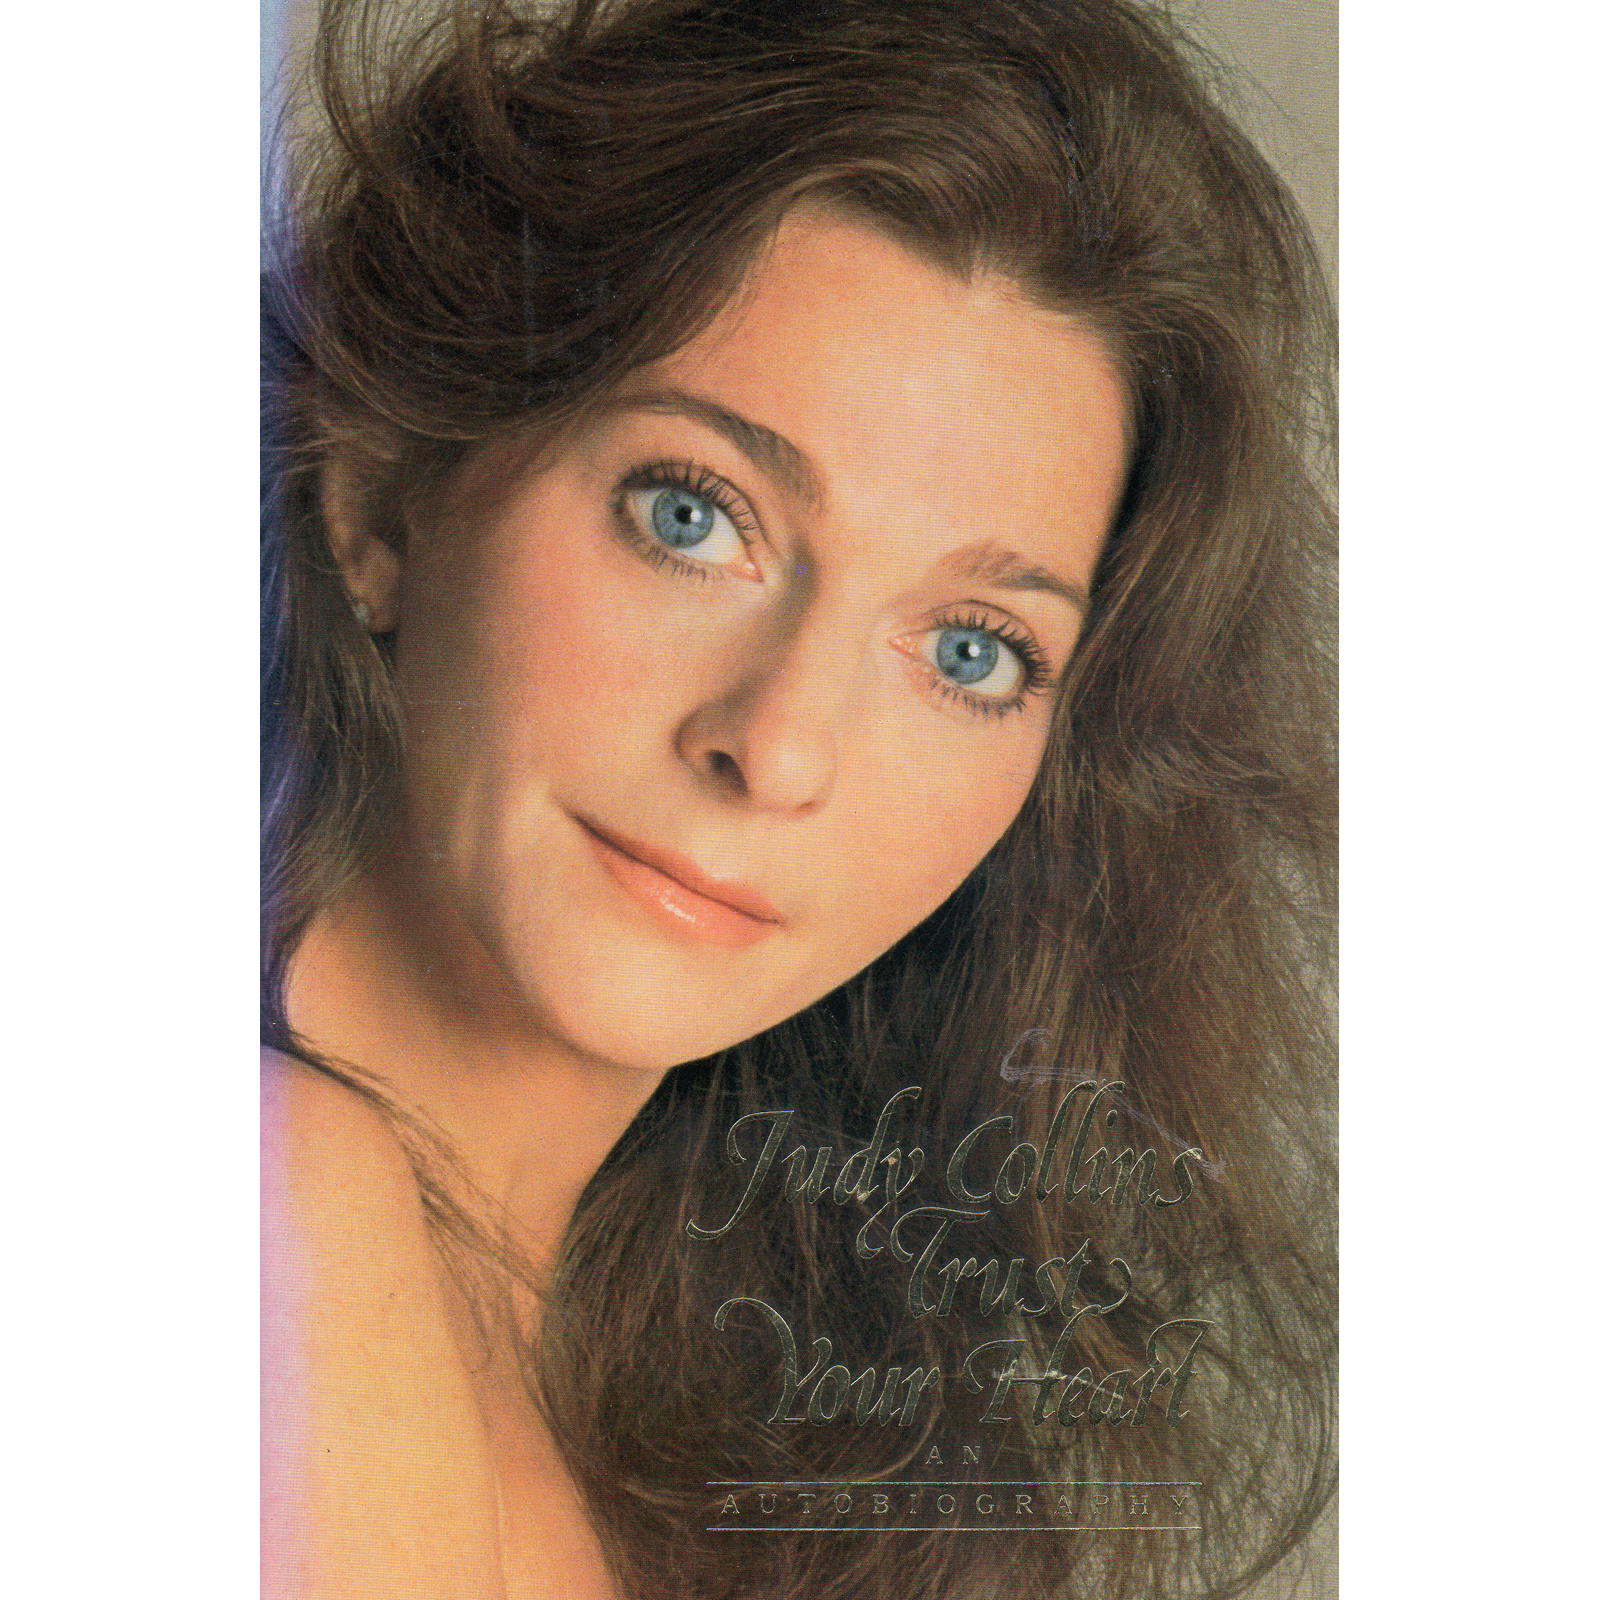 JUDY COLLINS Trust Your Heart An Autobiography Autographed Signed